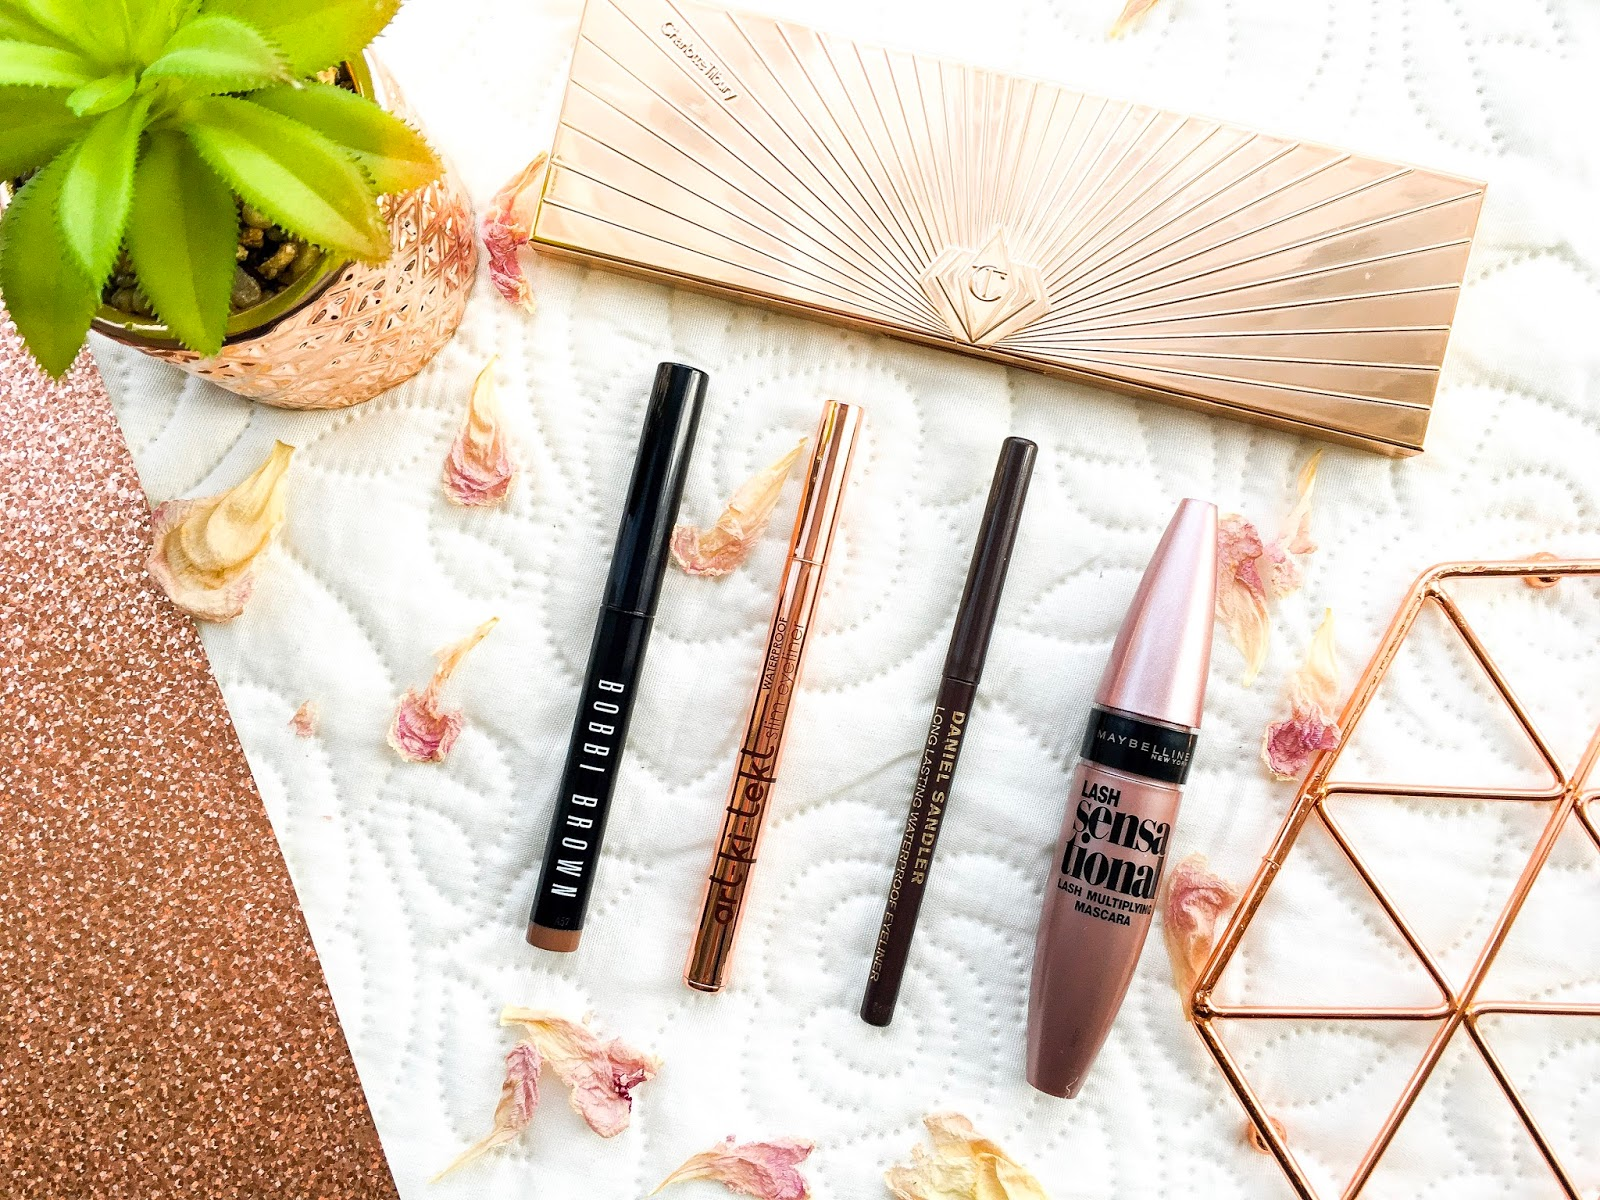 bobbi brown long wear shadow stick taupe, charlotte tilbury instant eye palette, la splash art ki tekt eyeliner, maybelline lash sensational, daniel sandler velvet eye pencil